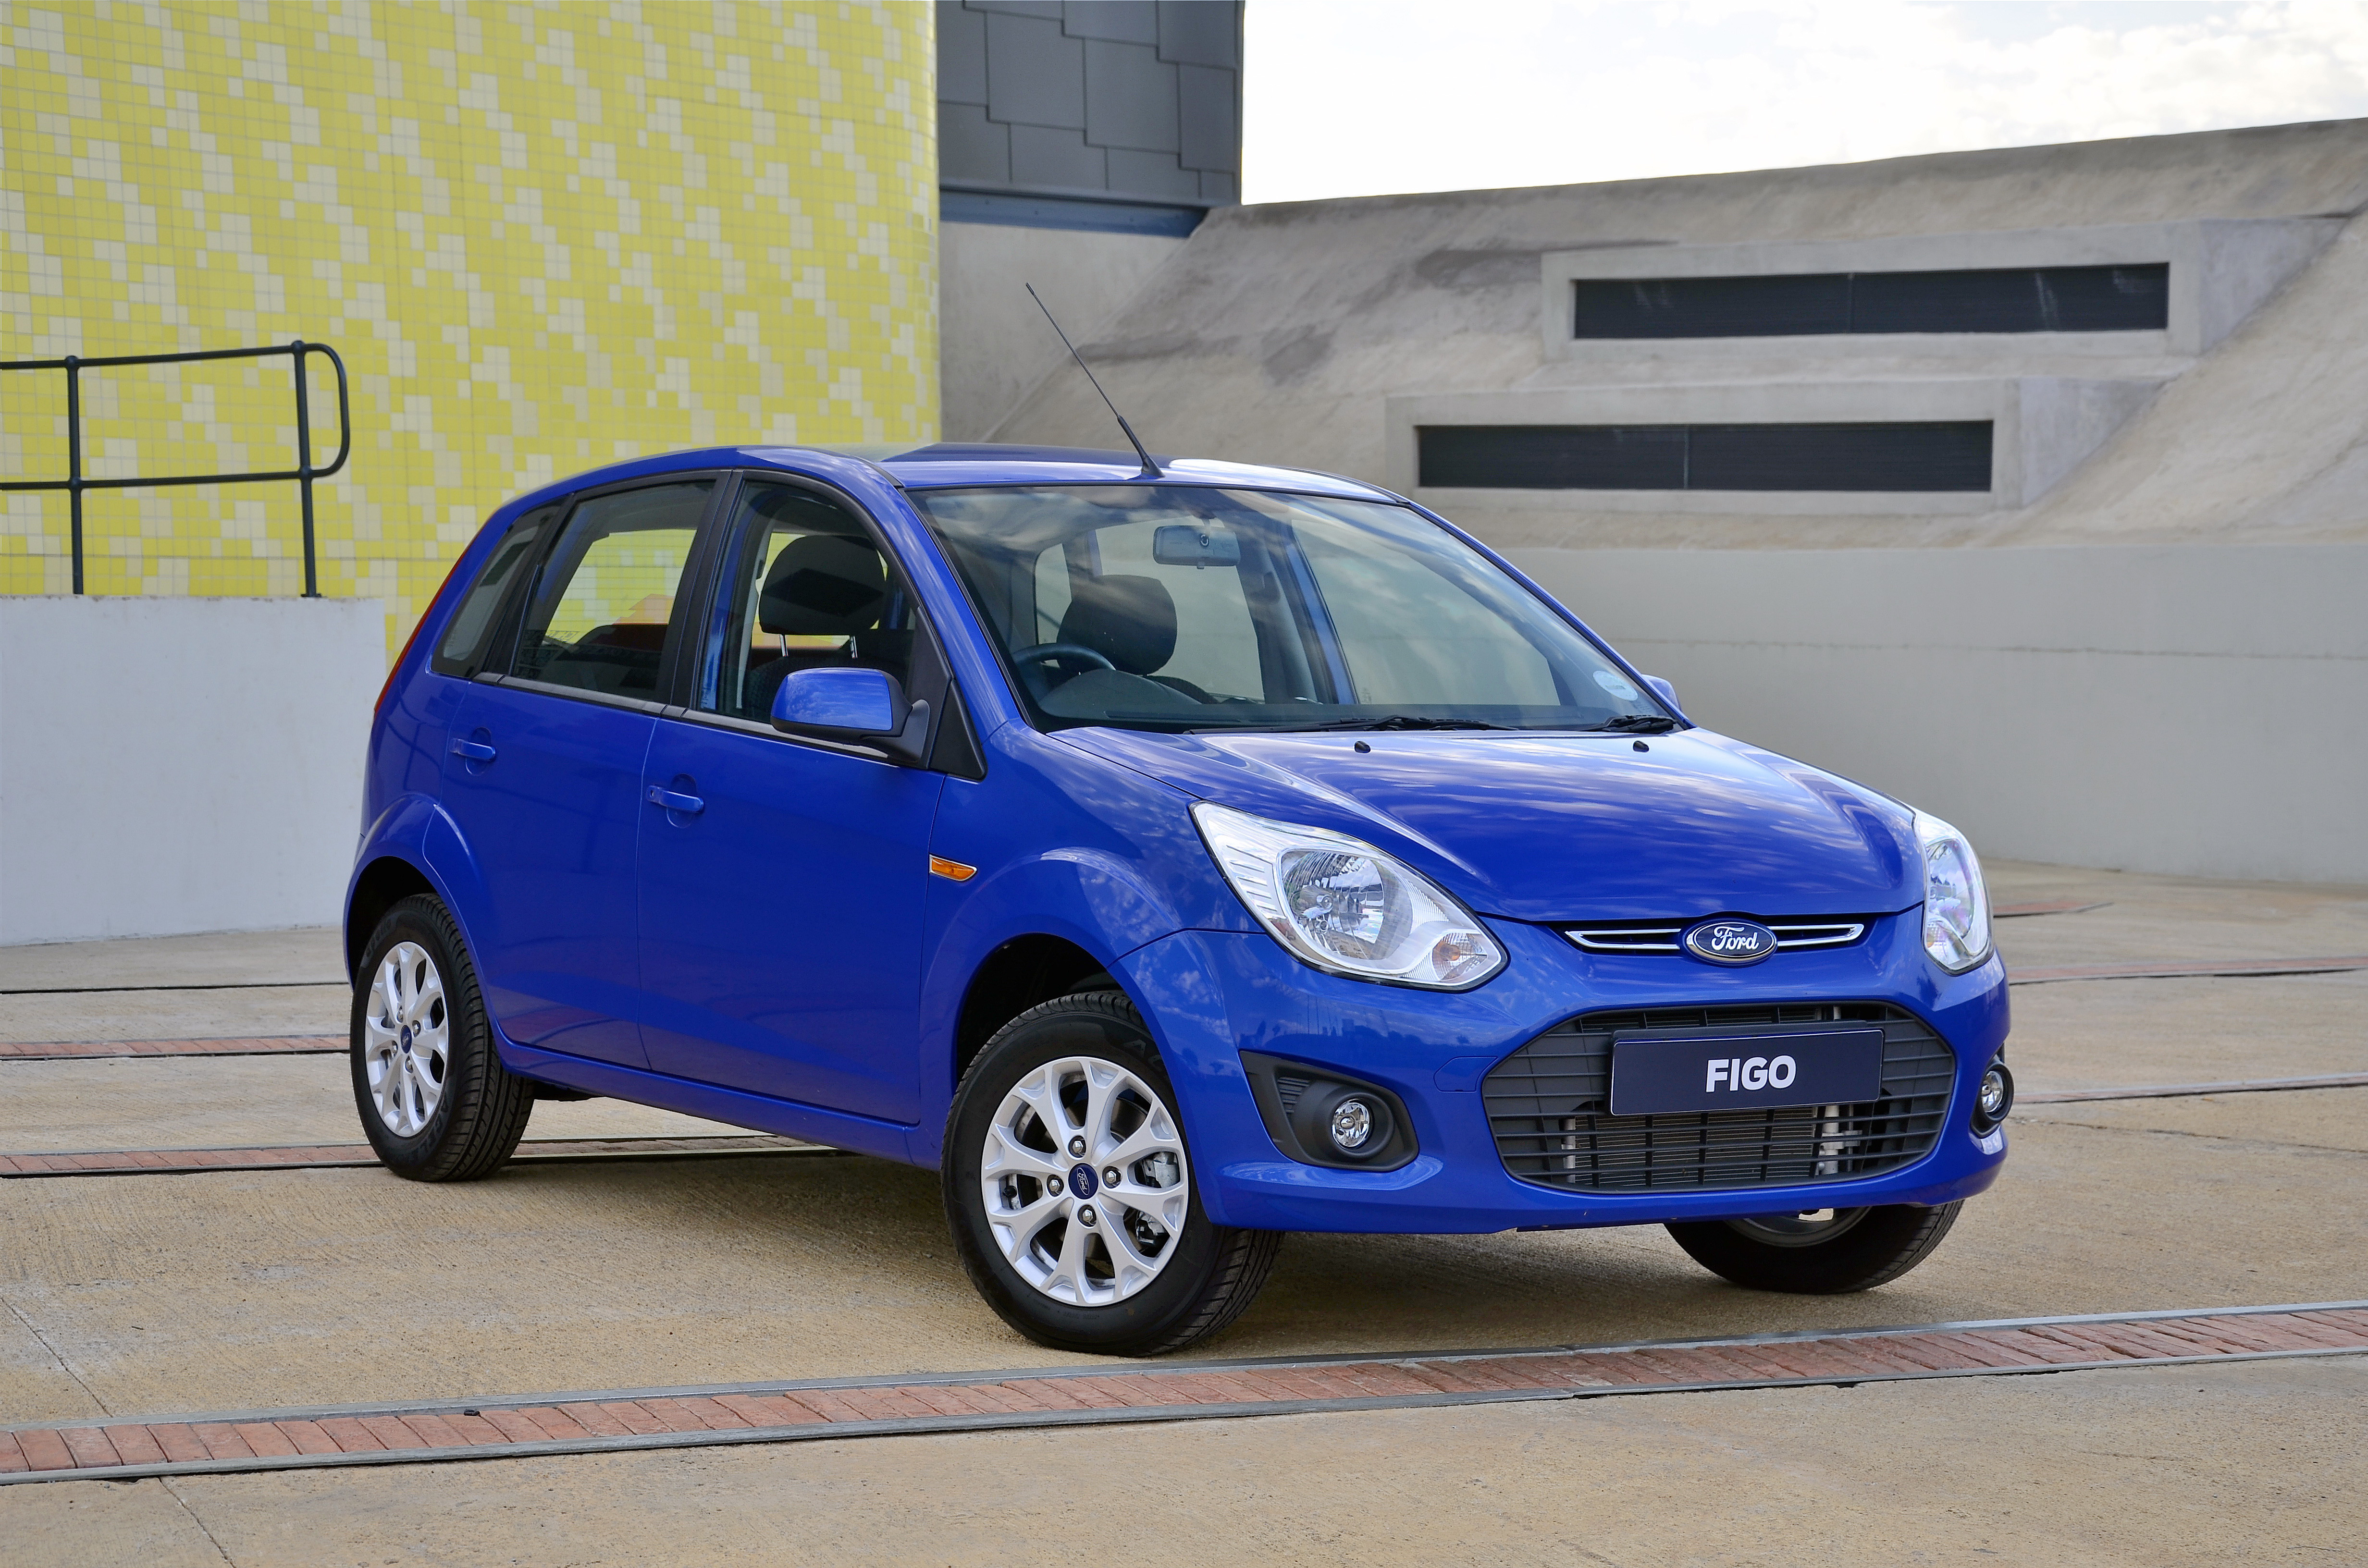 Ford gives the figo a fresher face for 2013